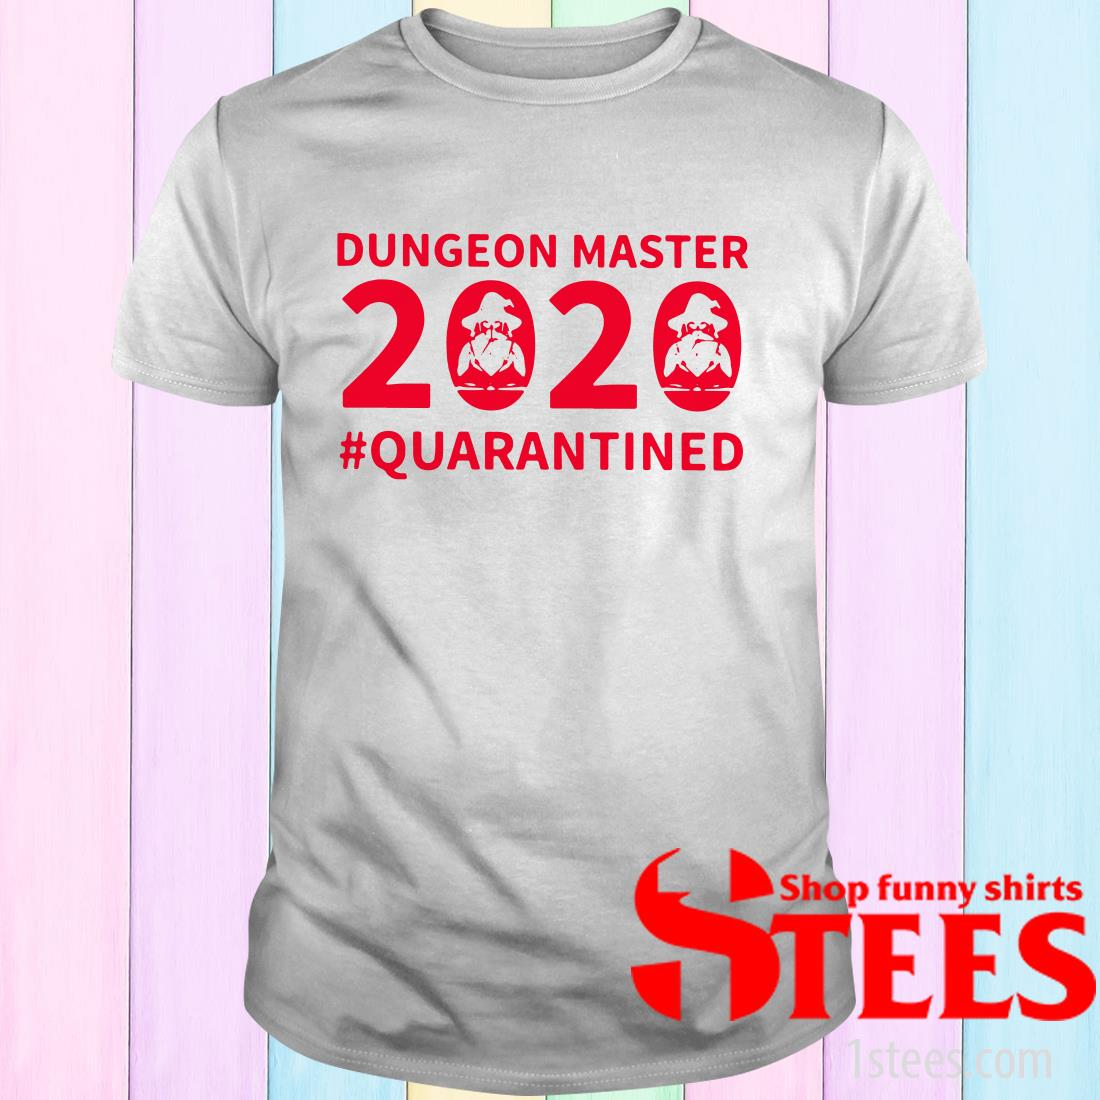 Hot Dungeon Master 2020 Quarantined Shirt